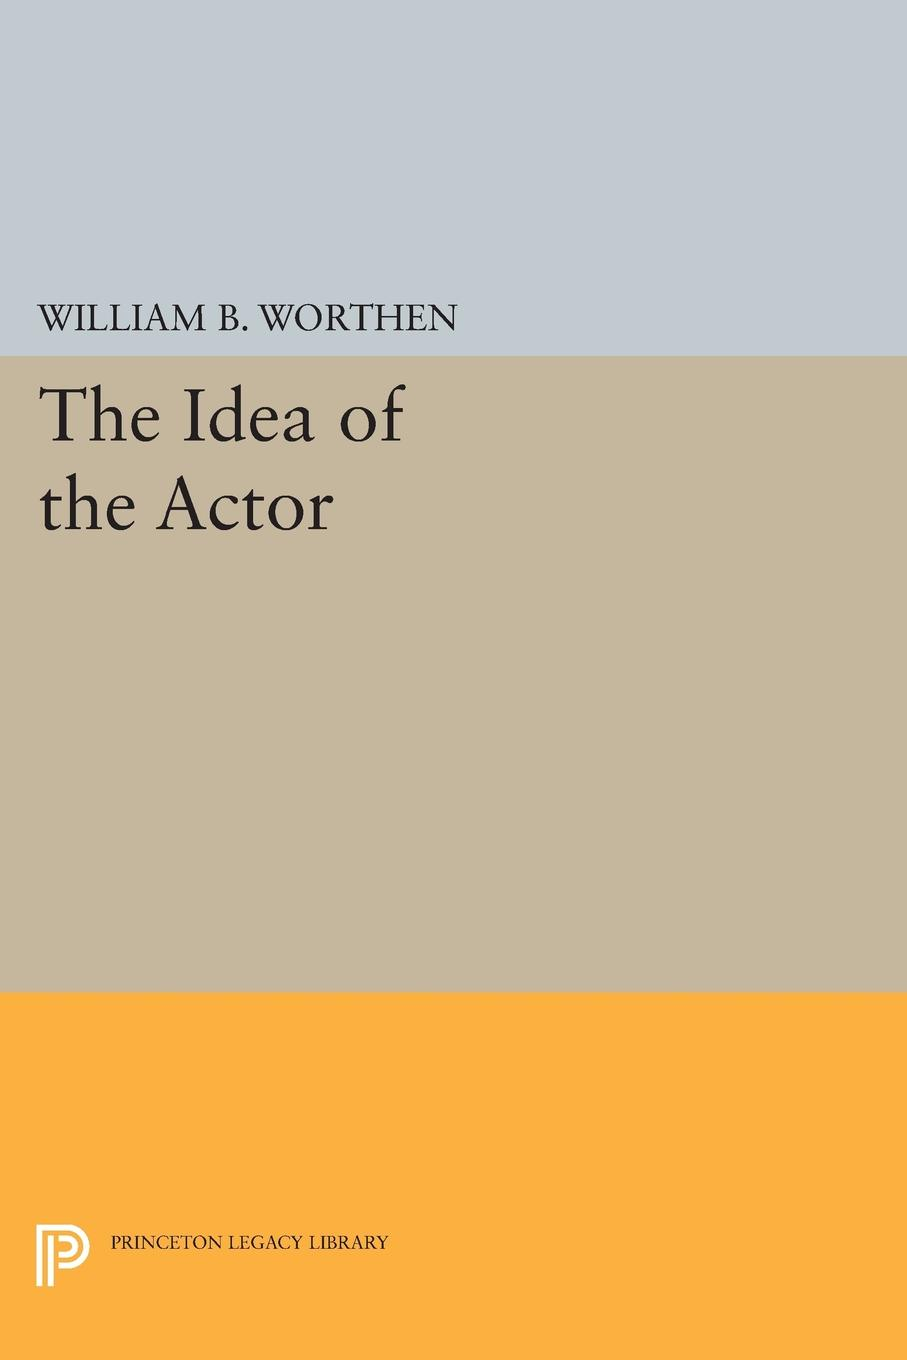 The Idea of the Actor